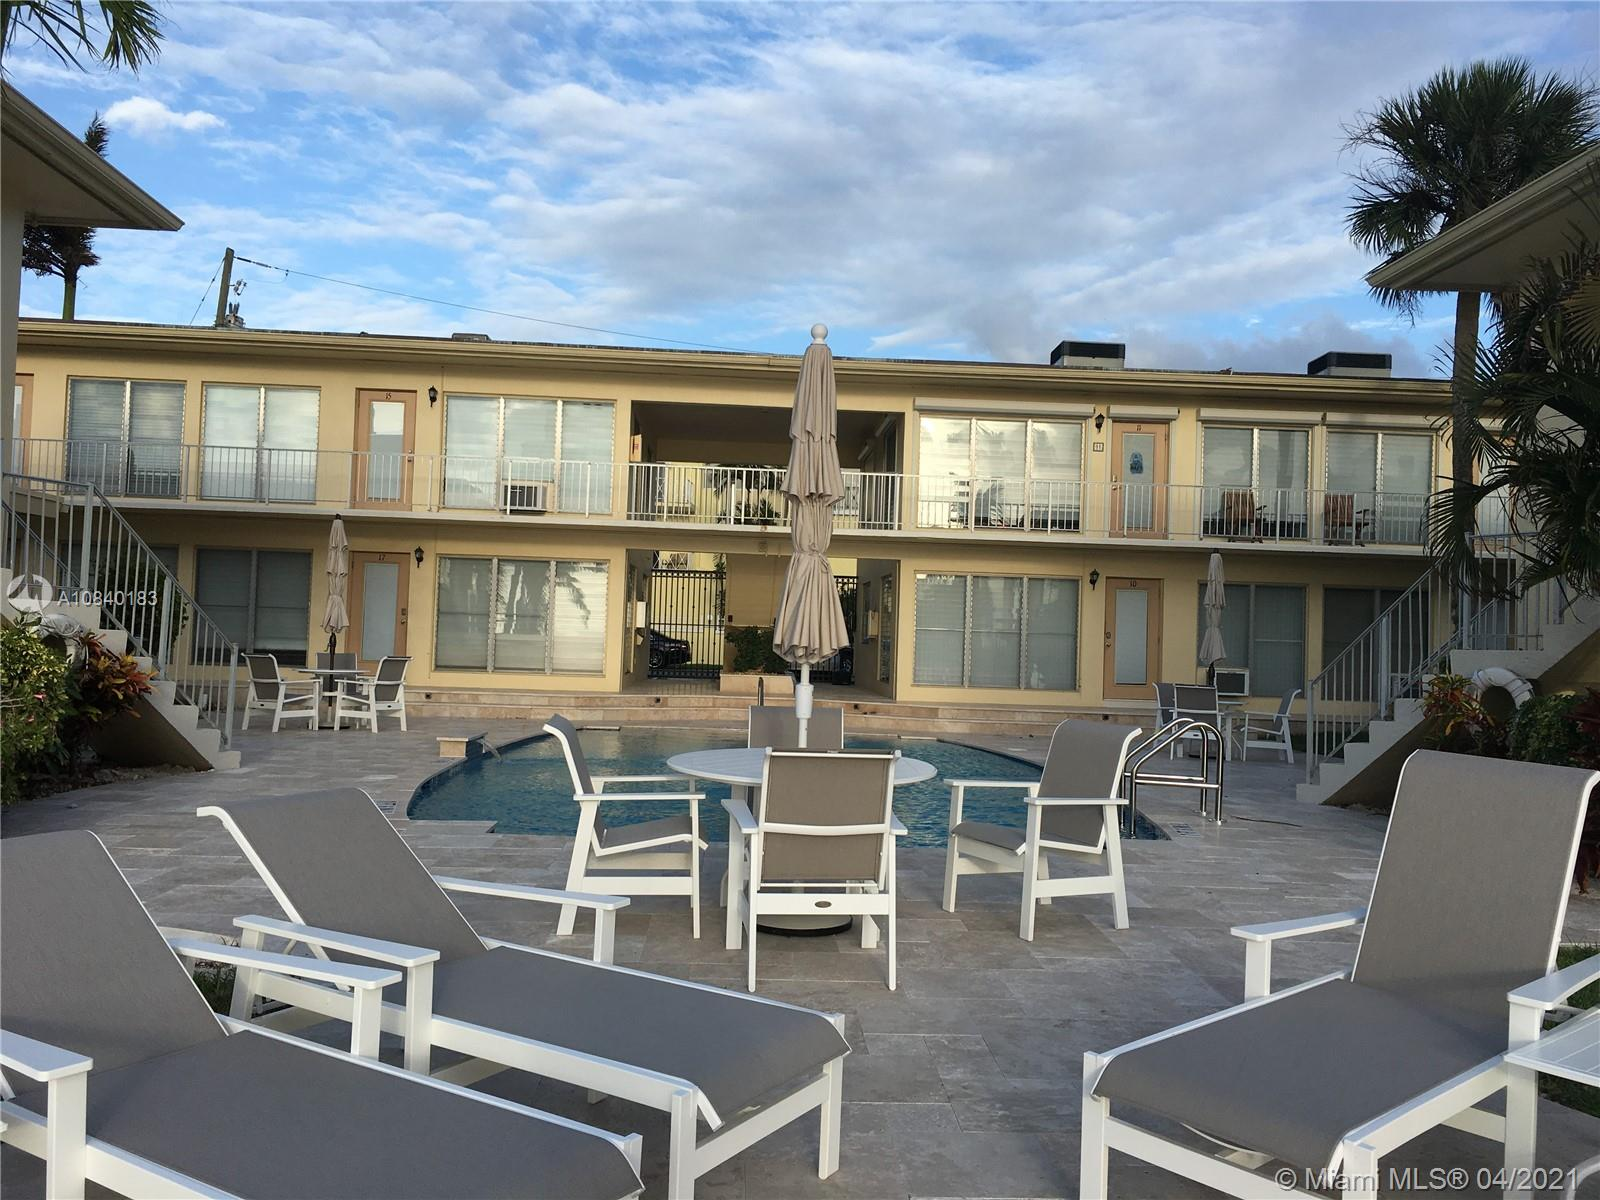 Beautiful location for all your needs. Cozy 1 bedroom in the lovely Harbour Inlet with breathtaking views. Walking distance to the beach. Quiet boutique community where you can sit and catch the sunsets and see all the yachts pass by from your living room. 2nd floor direct access with no elevator, only pool is shared common area.